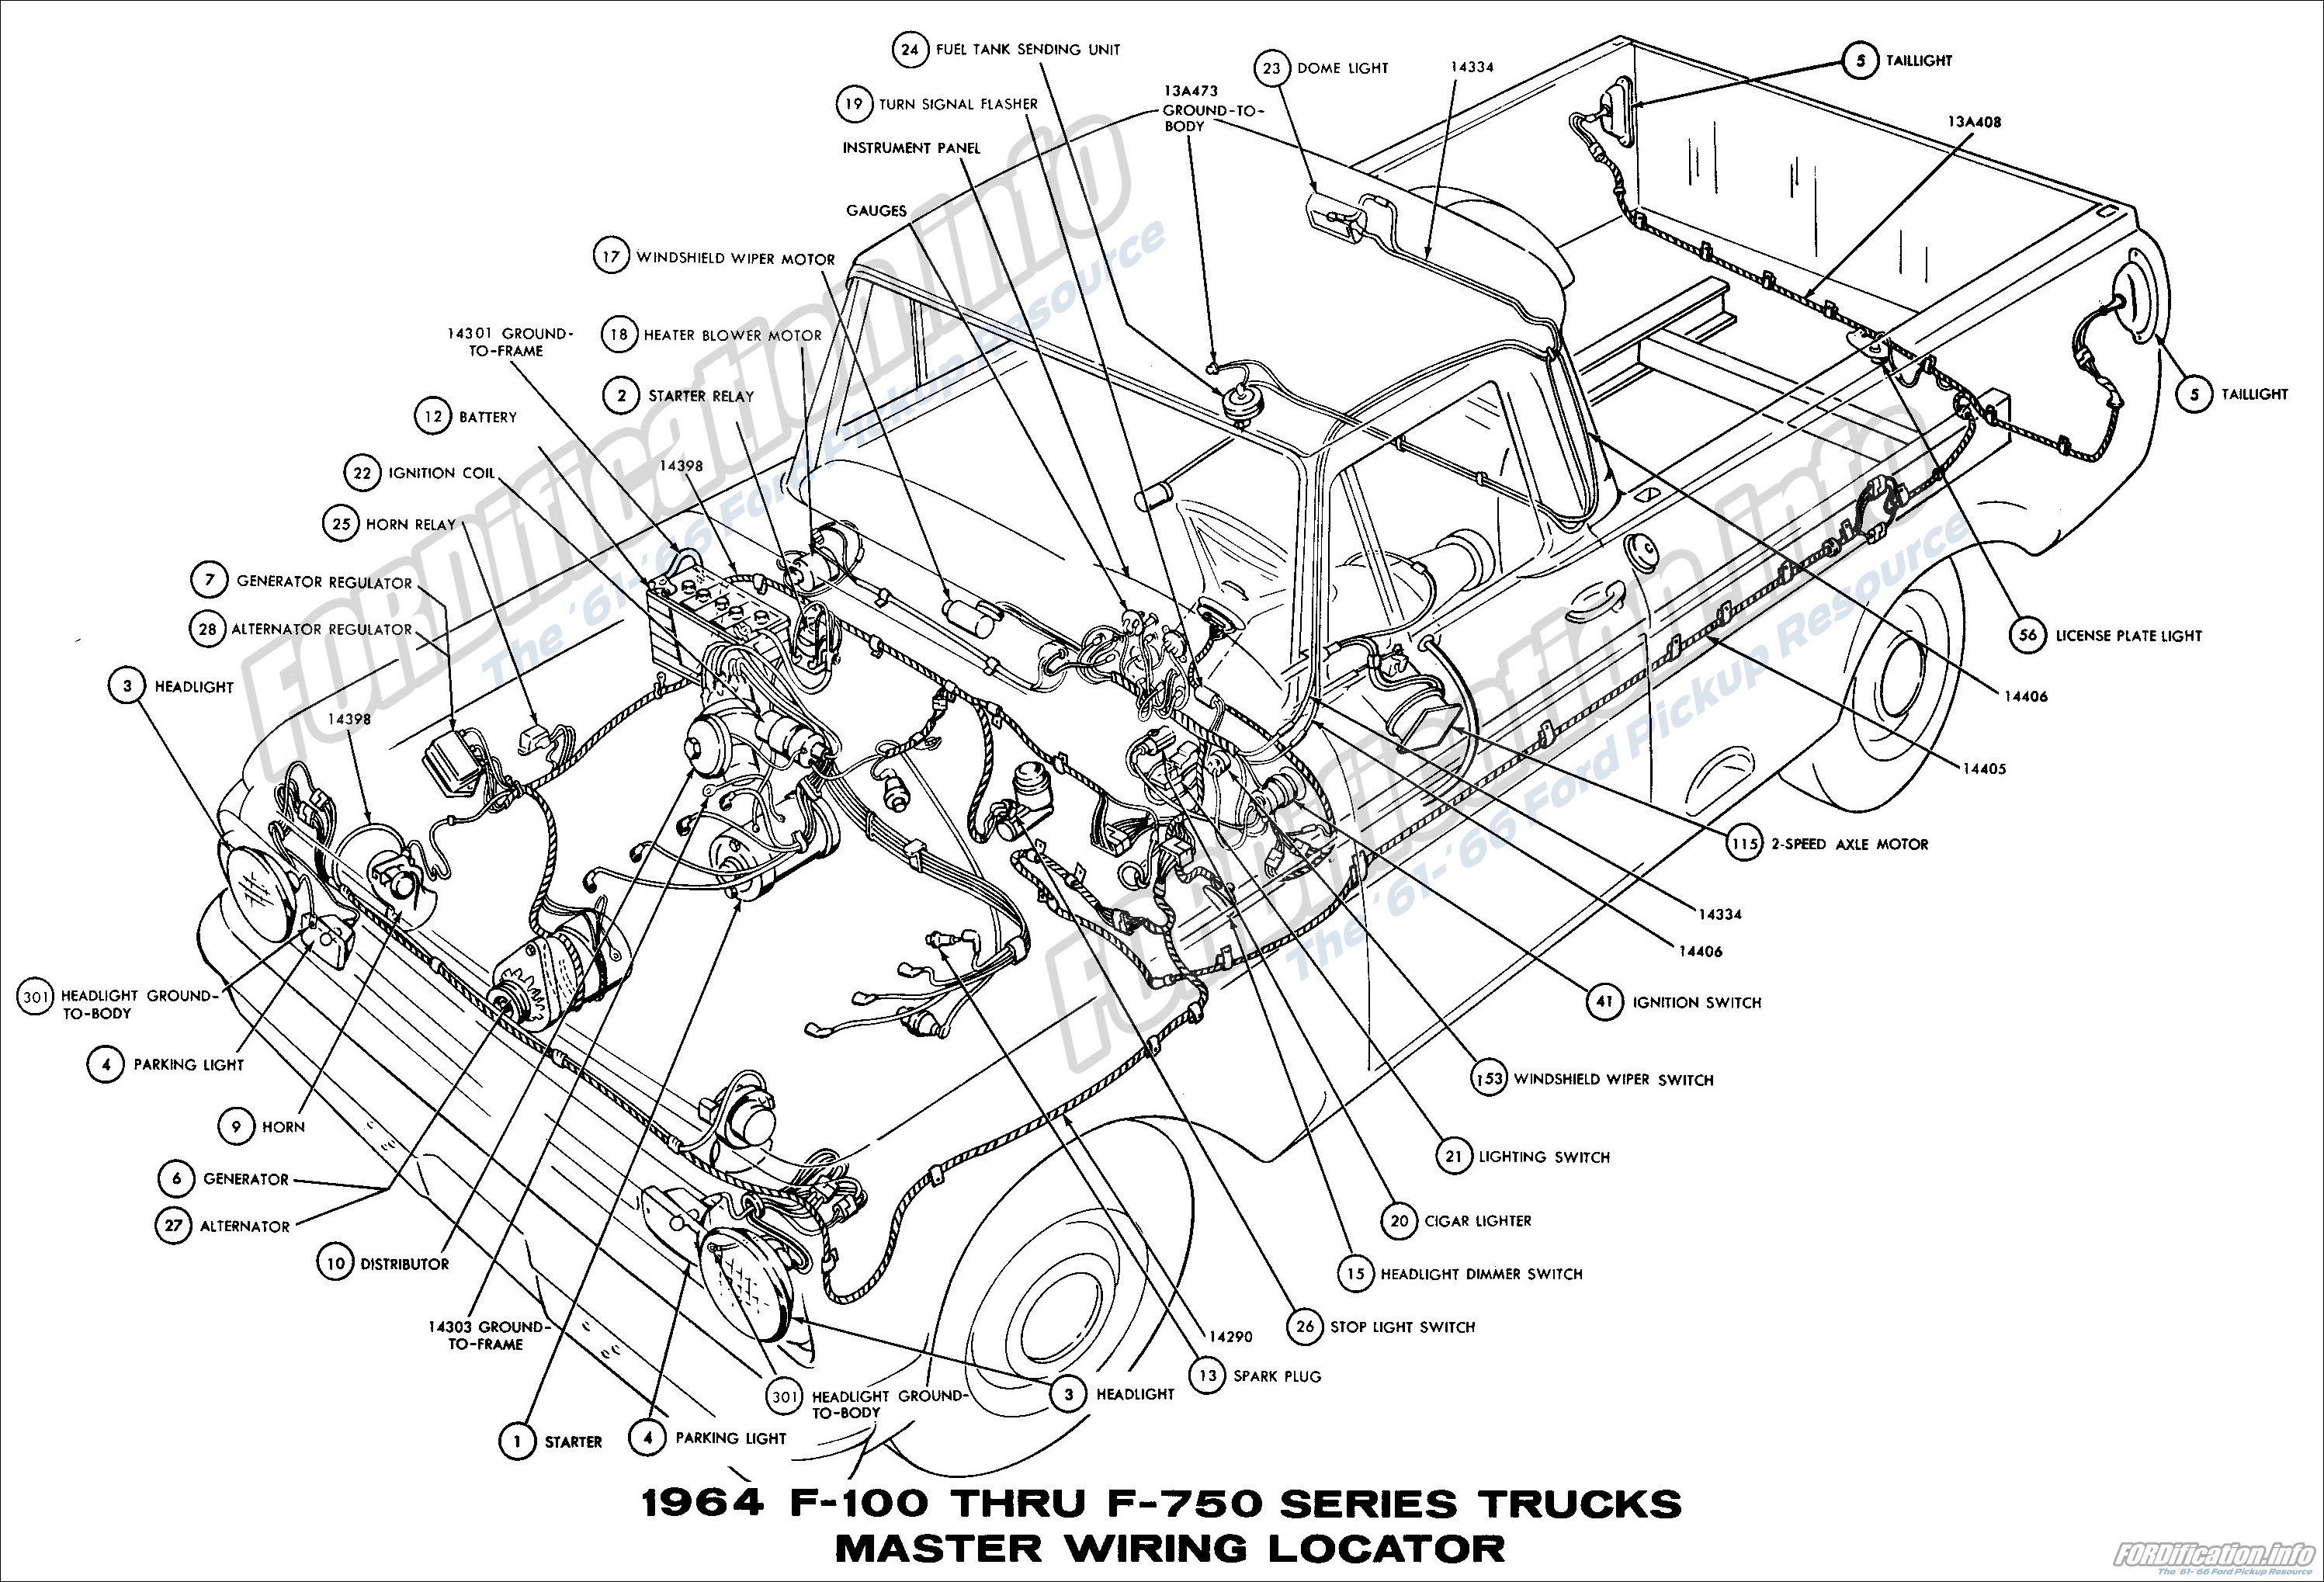 1964_01_gif 1964 ford truck wiring diagrams fordification info the '61 '66 ford truck wiring diagrams free at edmiracle.co